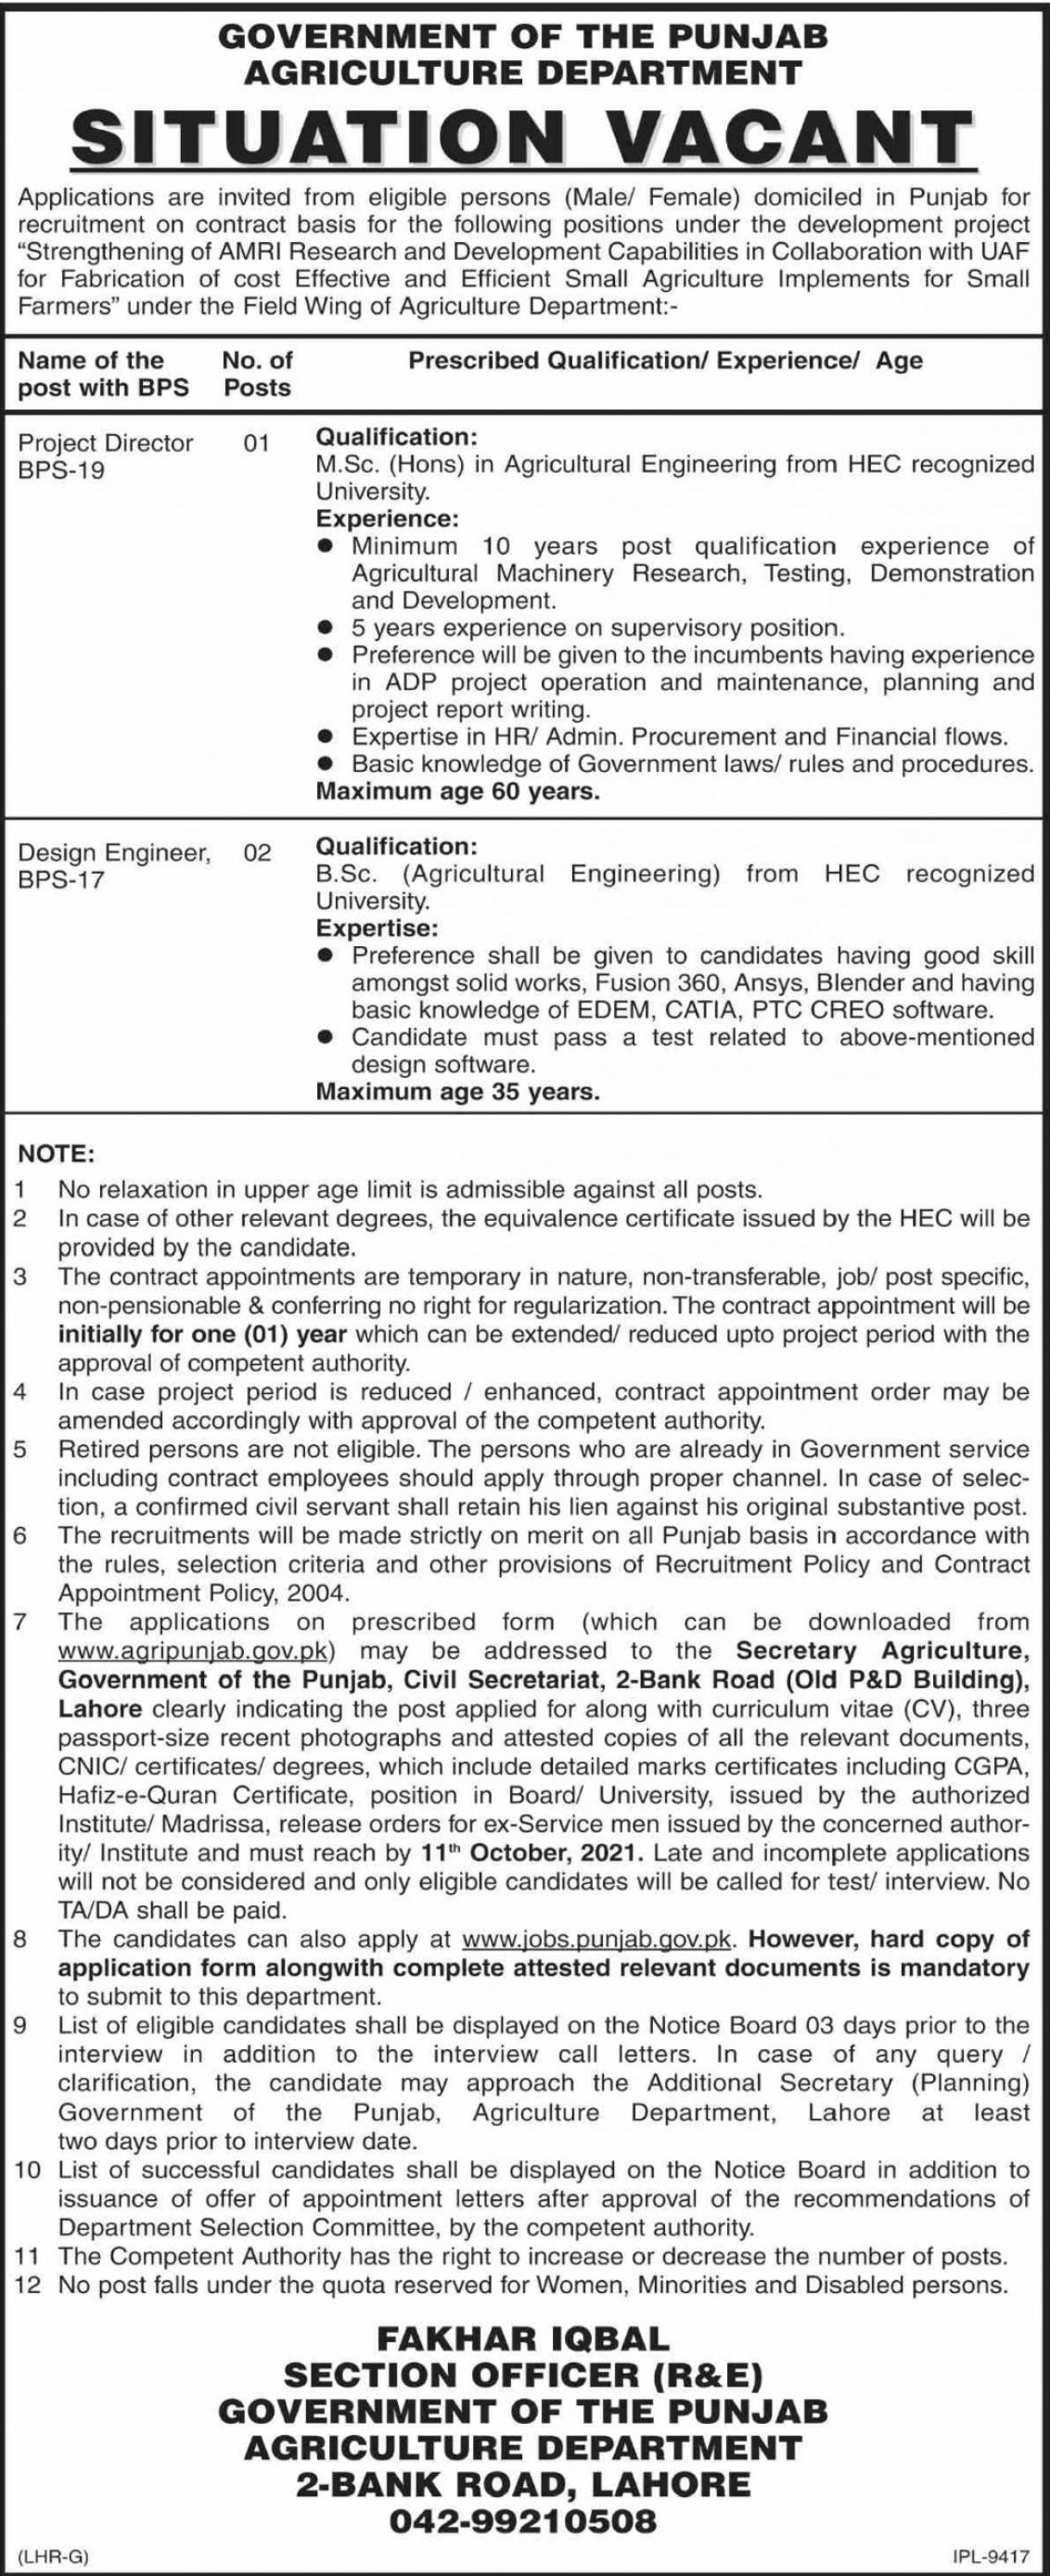 Government of the Punjab Agriculture Department Vacancies 2021 – Dailyjobs.pk 3